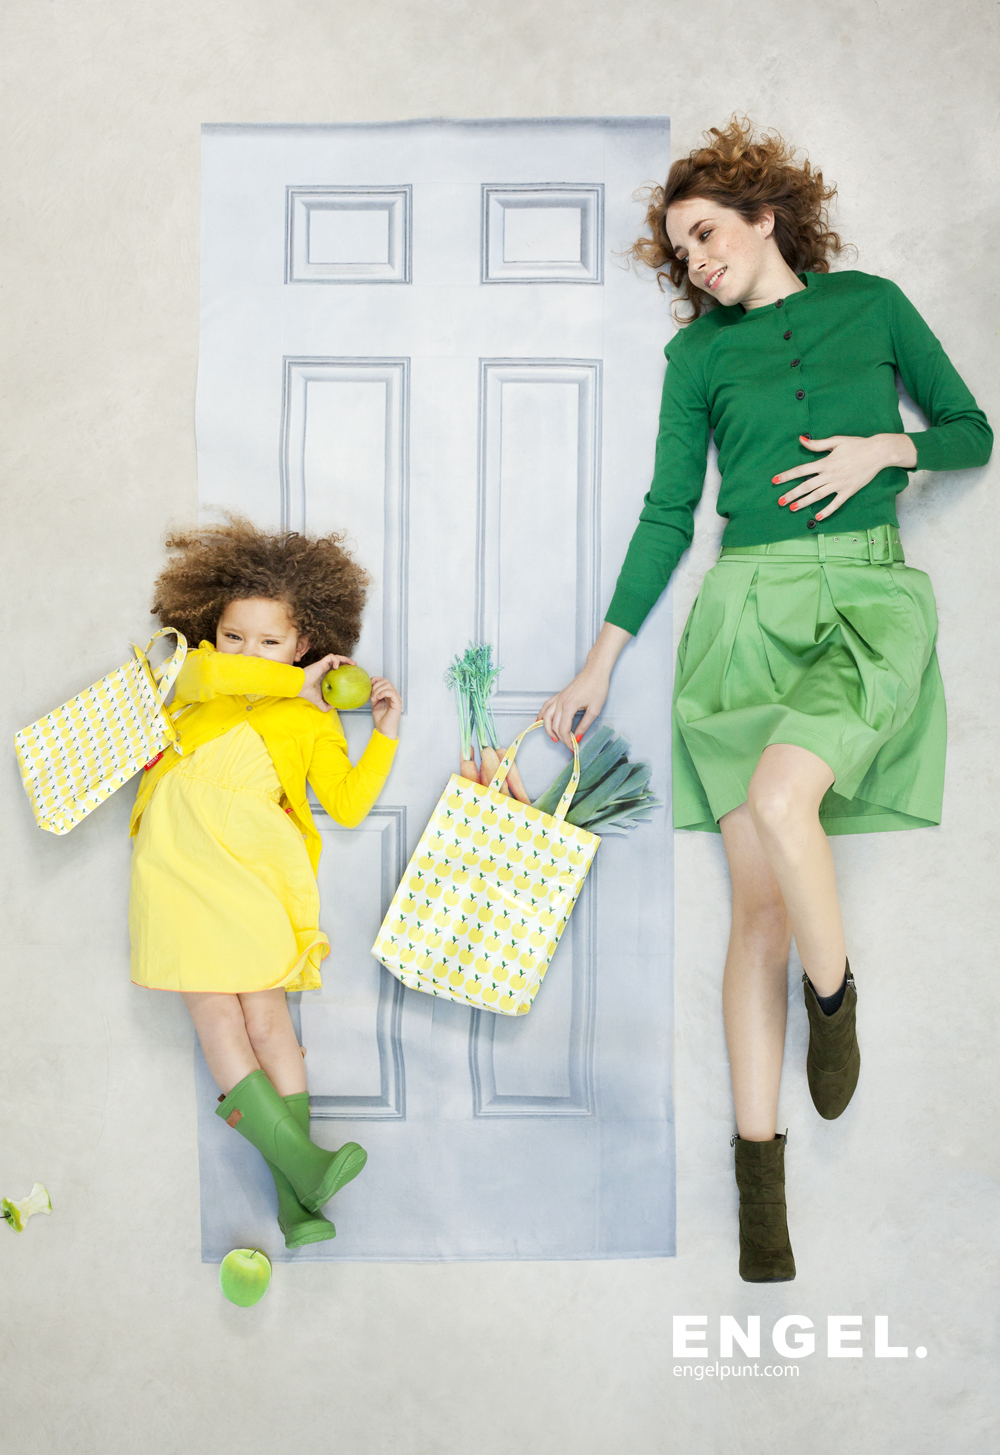 Engel. matching adult and kids bags